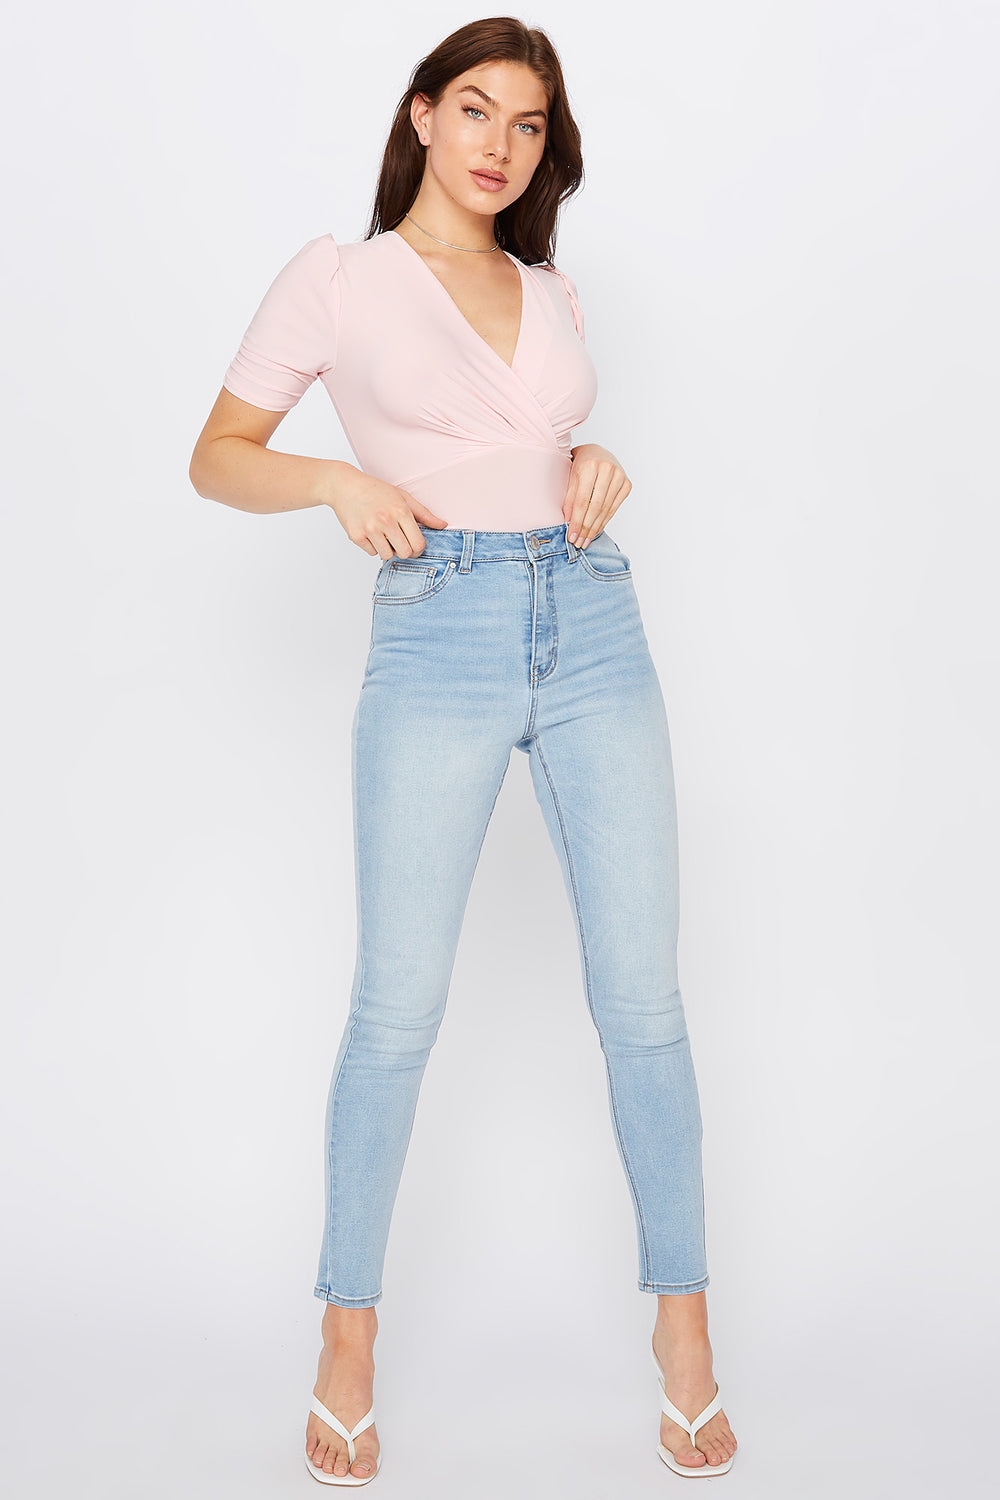 Refuge Cali Light Wash High-Rise Skinny Jean Light Denim Blue